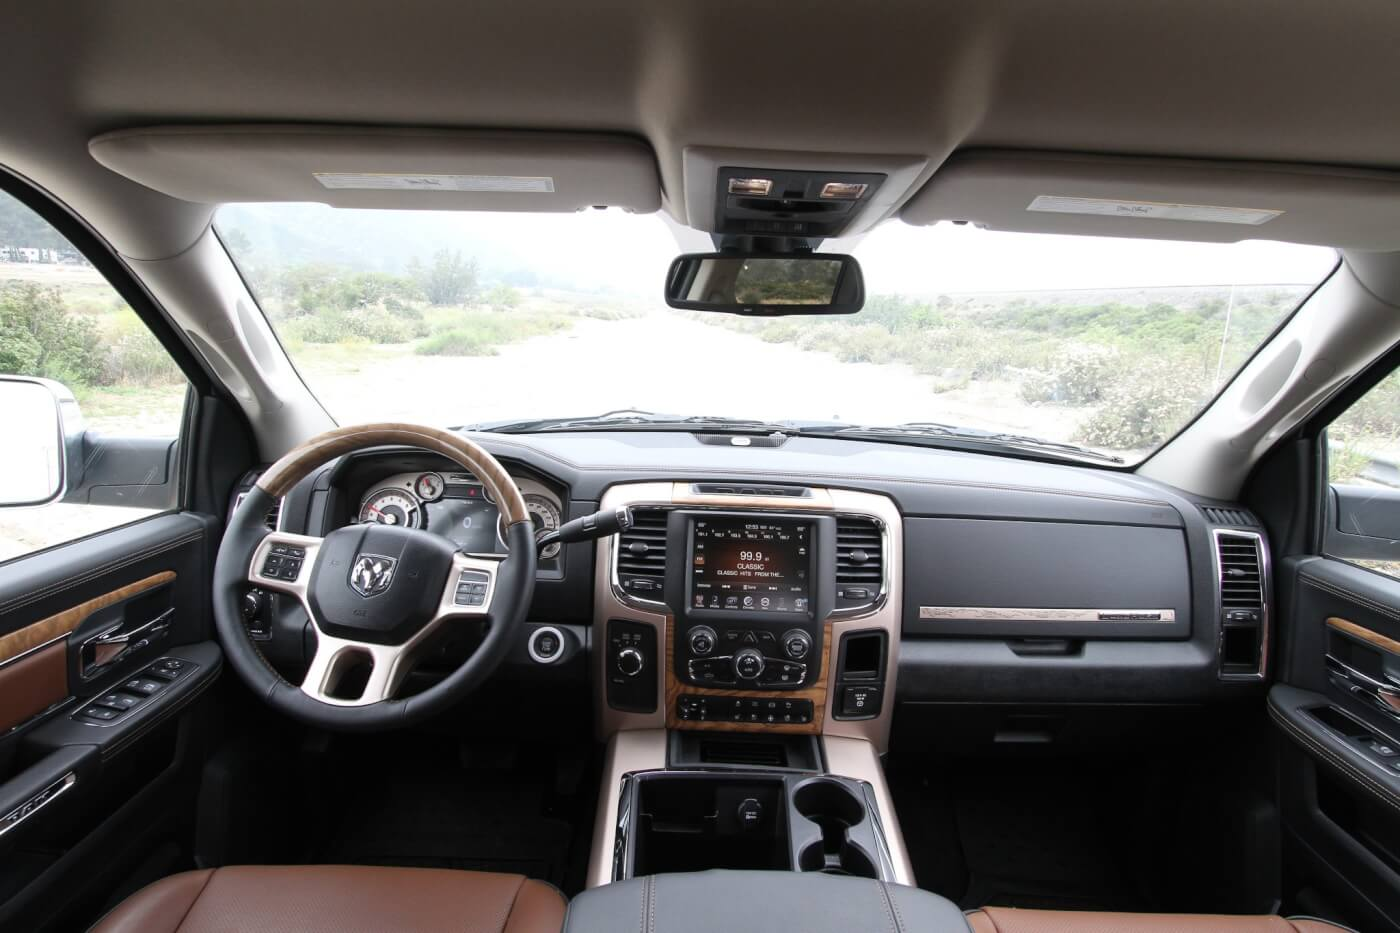 13. The interior of the Ram 3500 is comfortable, roomy, and designed for easy use of all features.